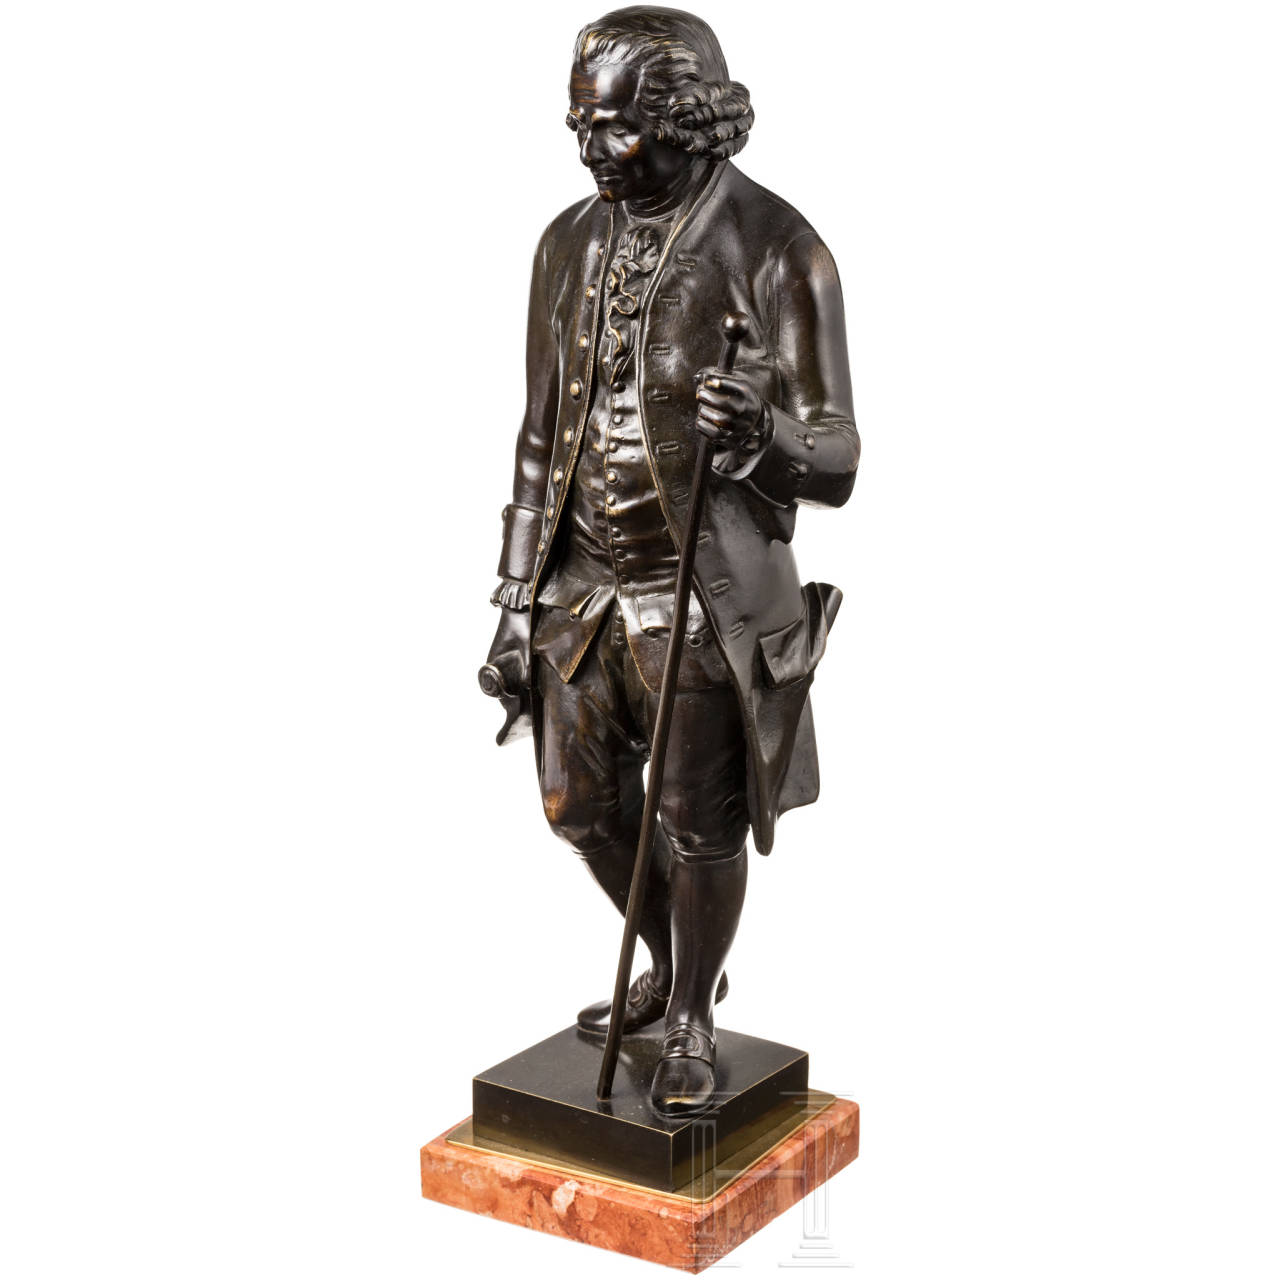 Bronze figure in the style of the 18th century (Voltaire?)